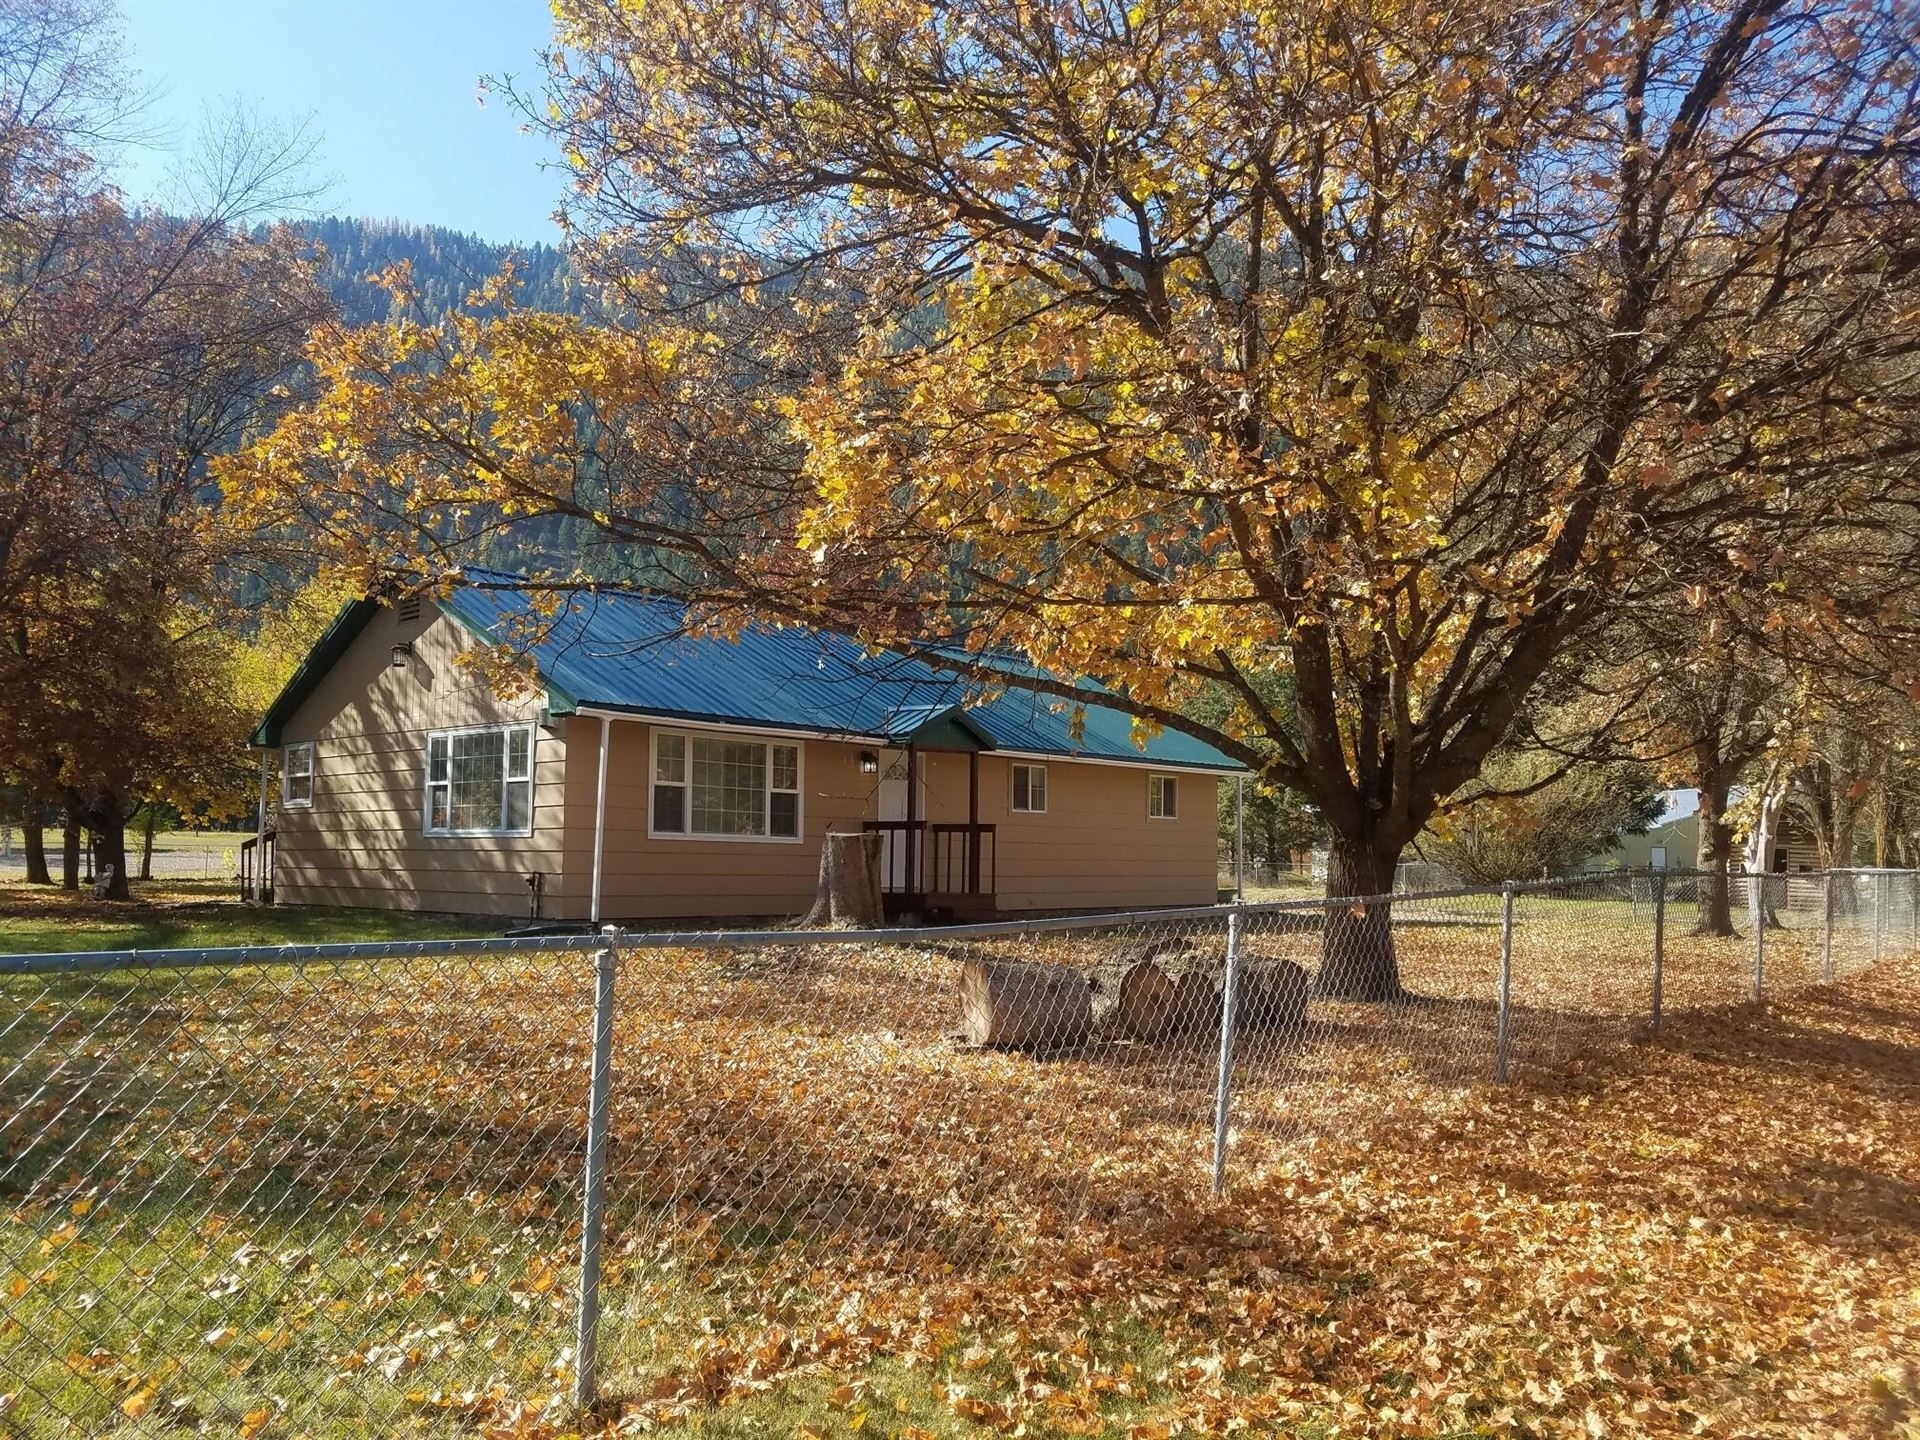 Photo of 312 Country Lane, Superior, MT 59872 (MLS # 22116477)